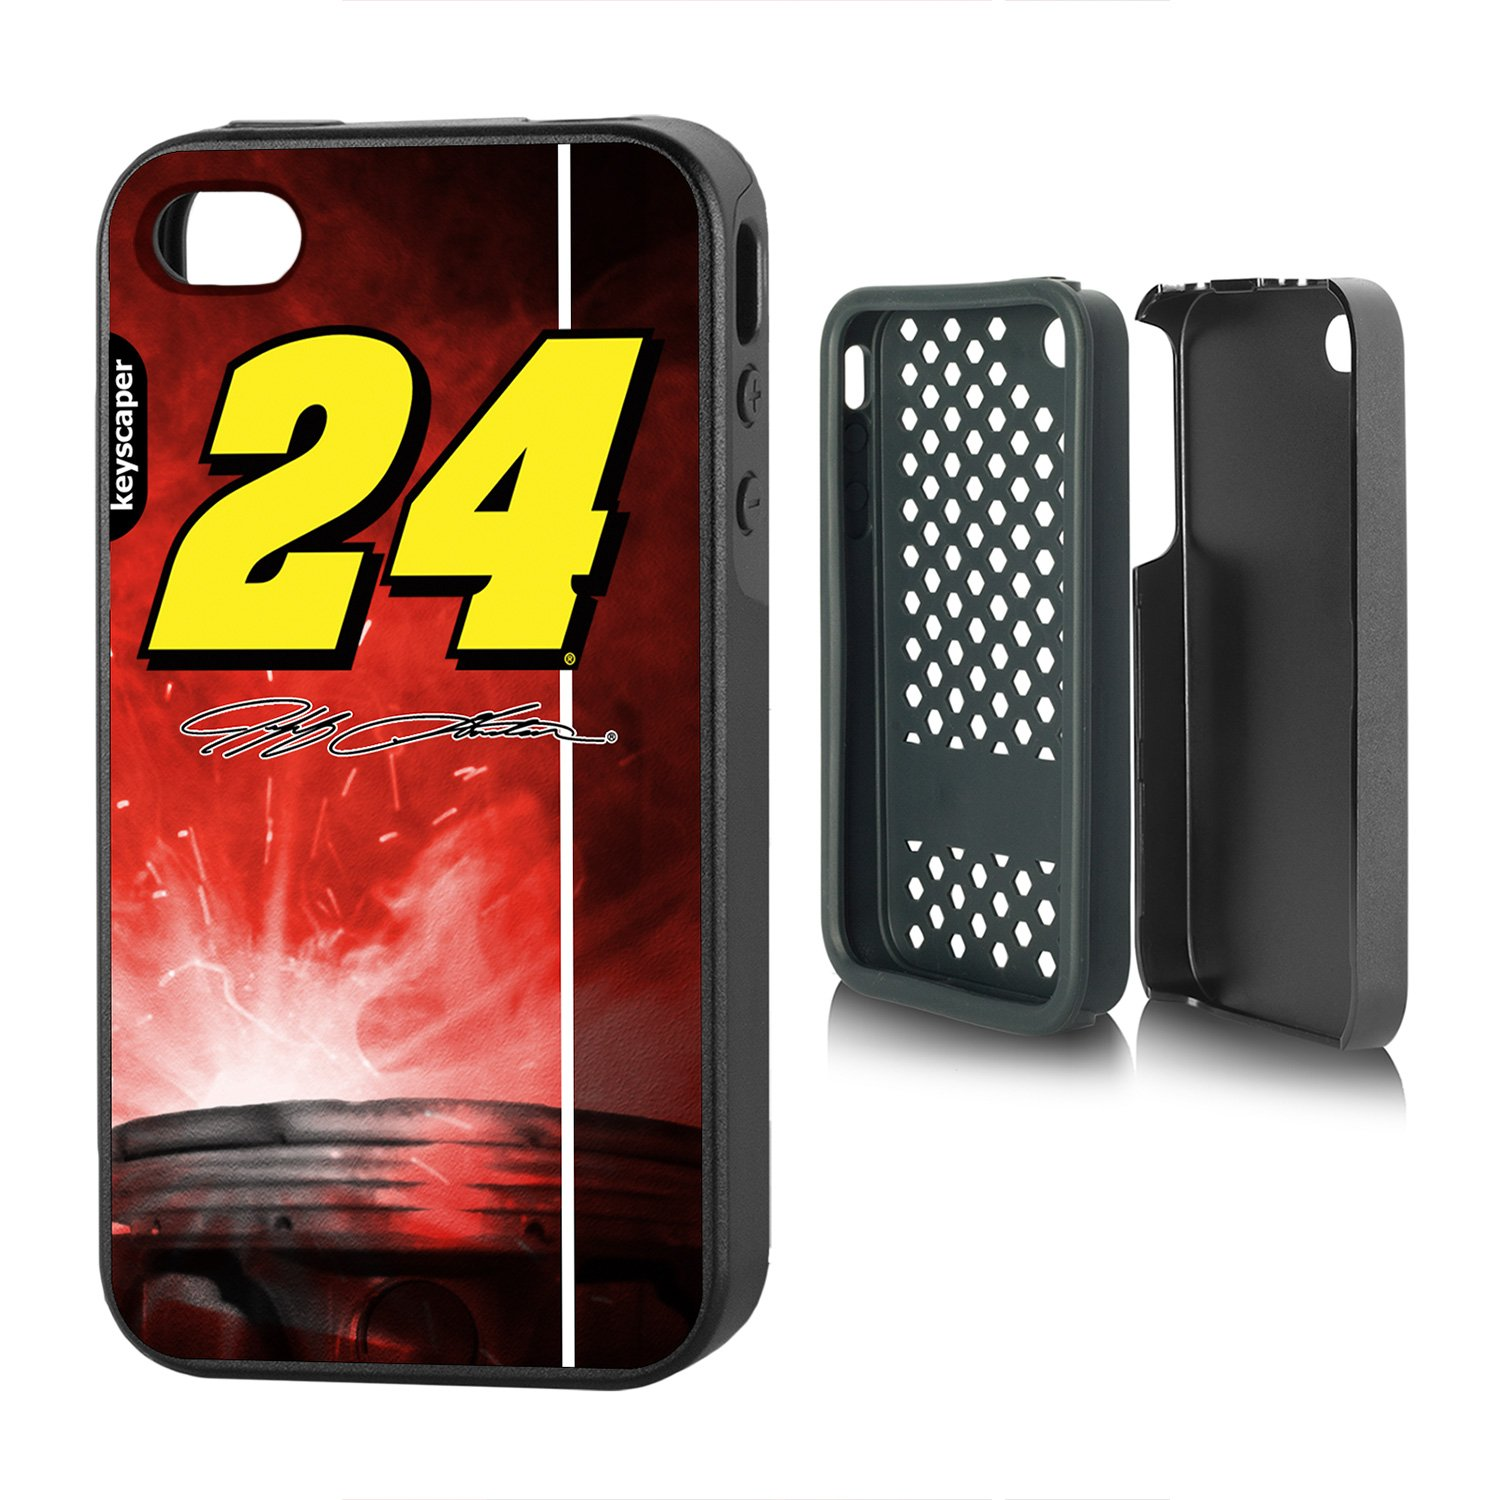 大特価!! Jeff Gordon iPhone 4 & by iPhone Jeff 4s 4 Rugged Case Officially Licensed by Nascar For The Apple iPhone 4/ 4s by Keyscaper ®耐久性2層保護衝撃吸収 B00SUBUG5A, 中古テニスマーケット:8c254928 --- arianechie.dominiotemporario.com